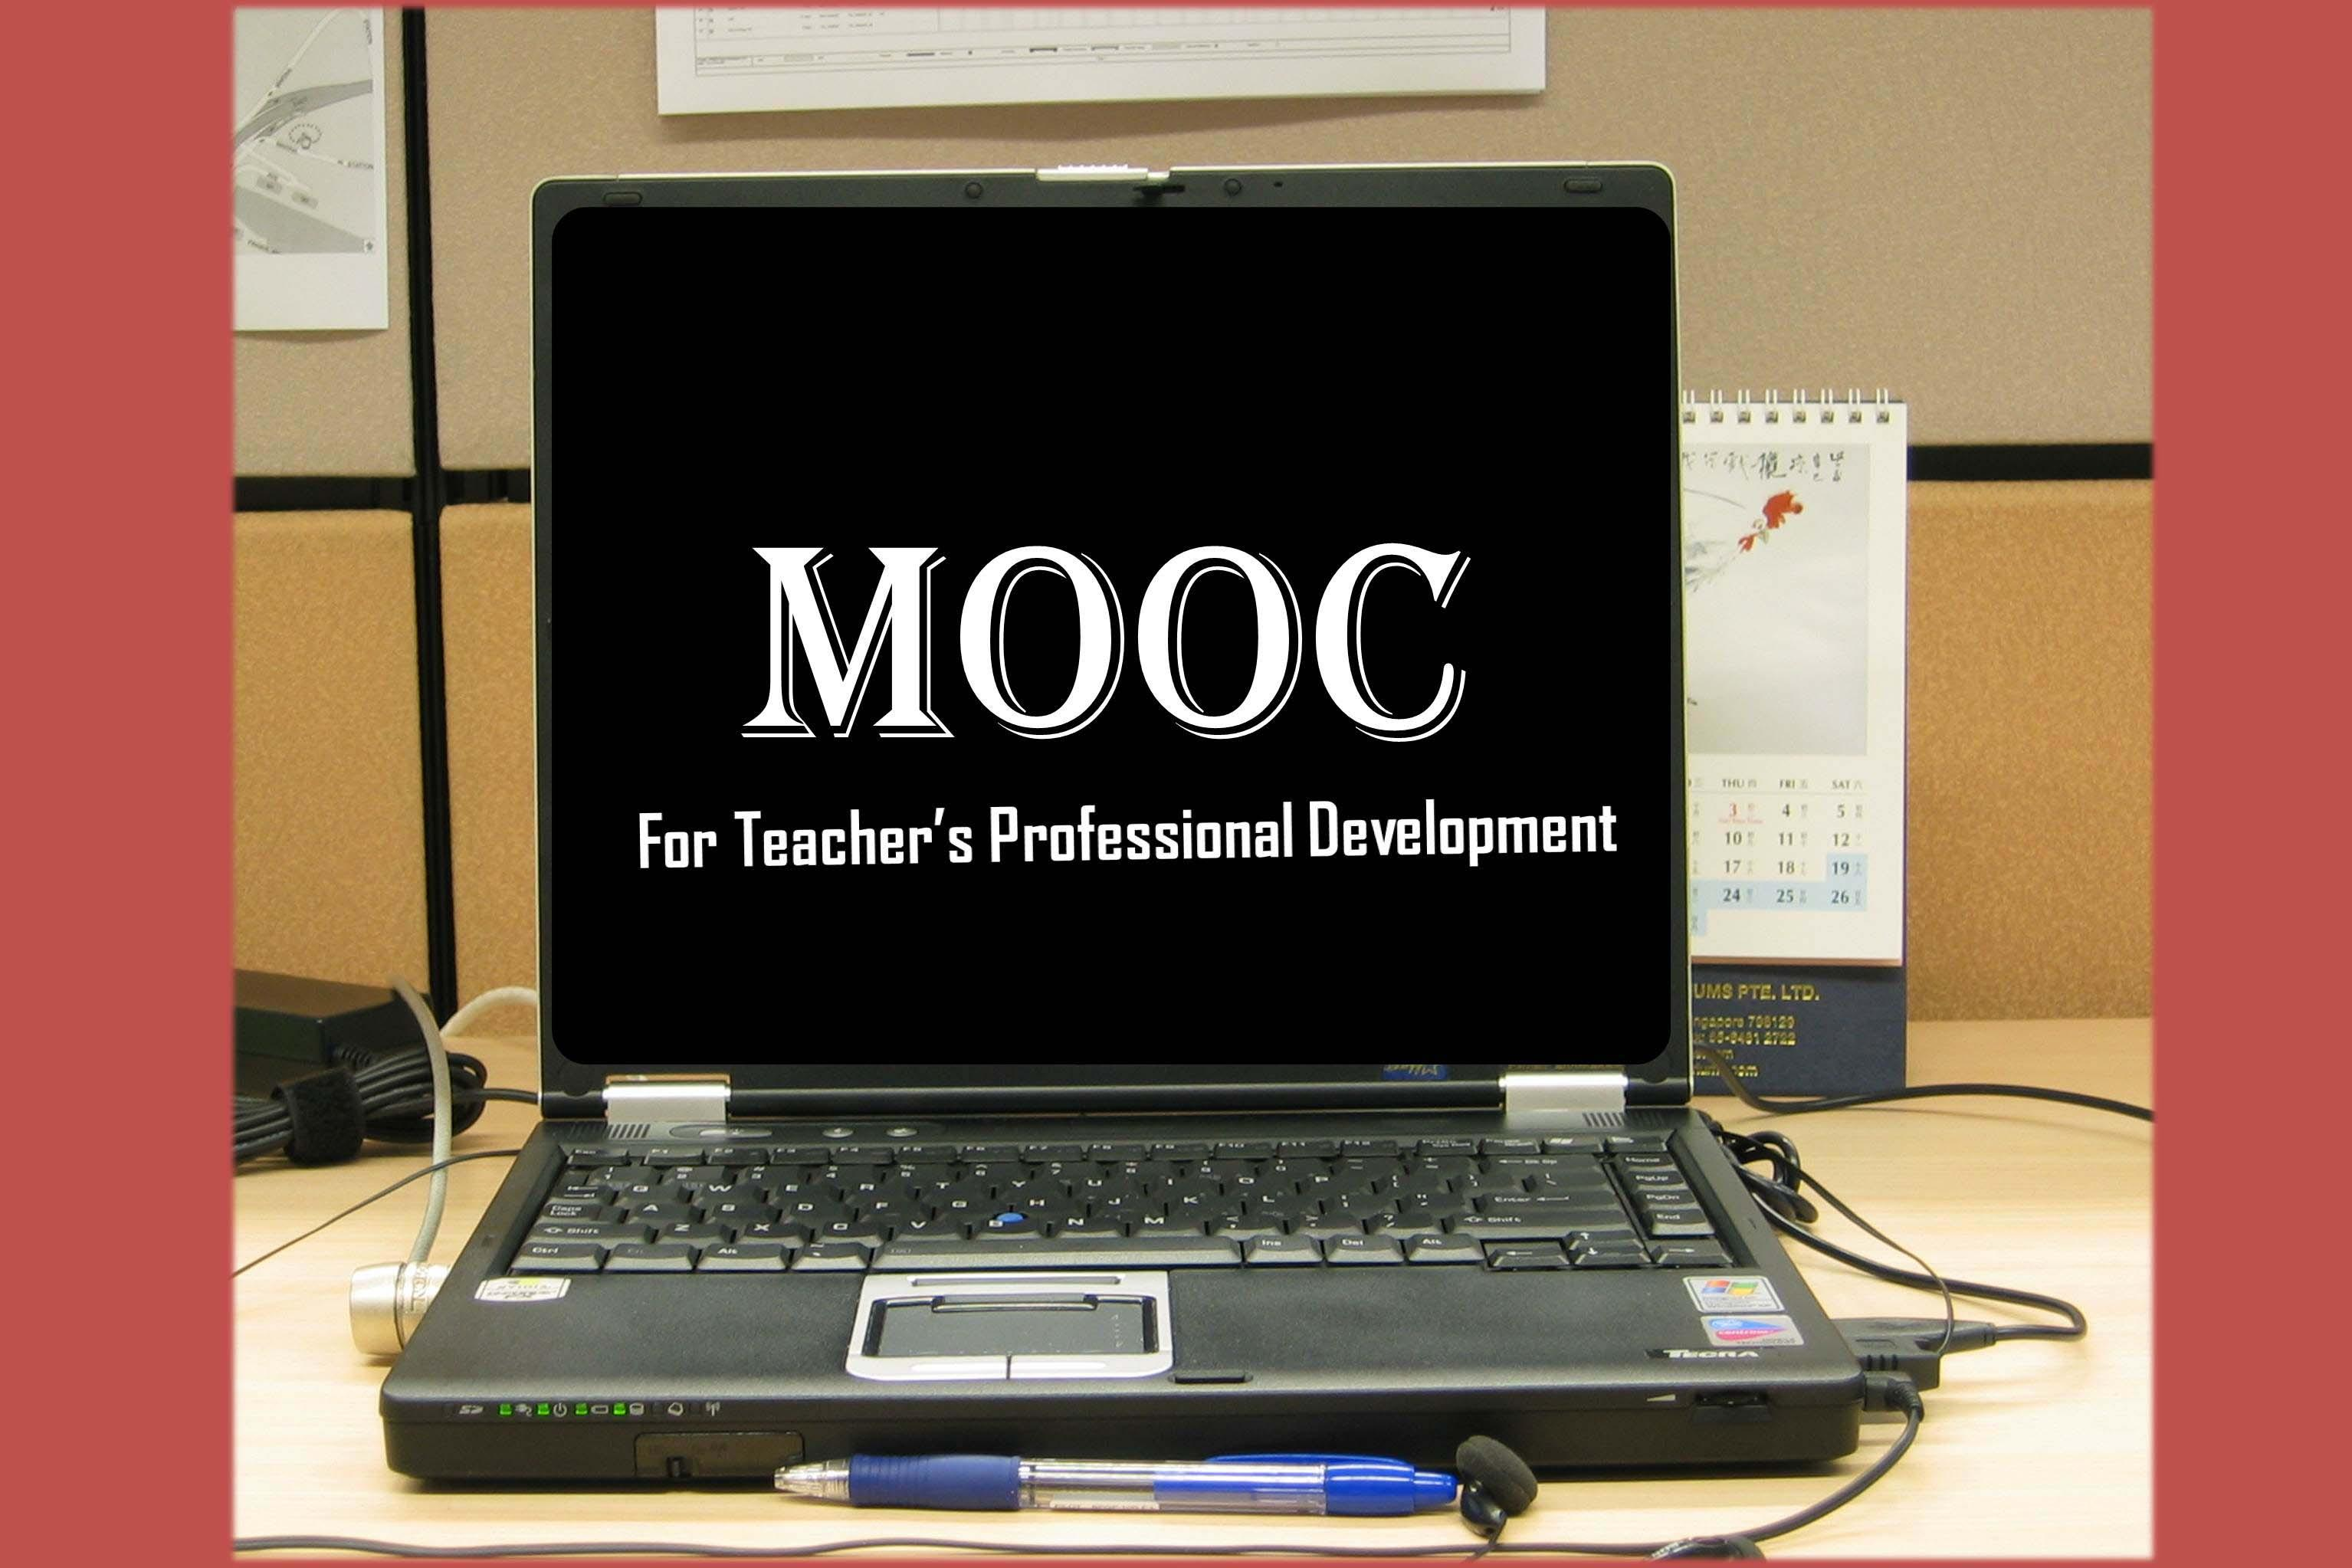 How Can MOOCs Help Educational Institutions in Professional Development?